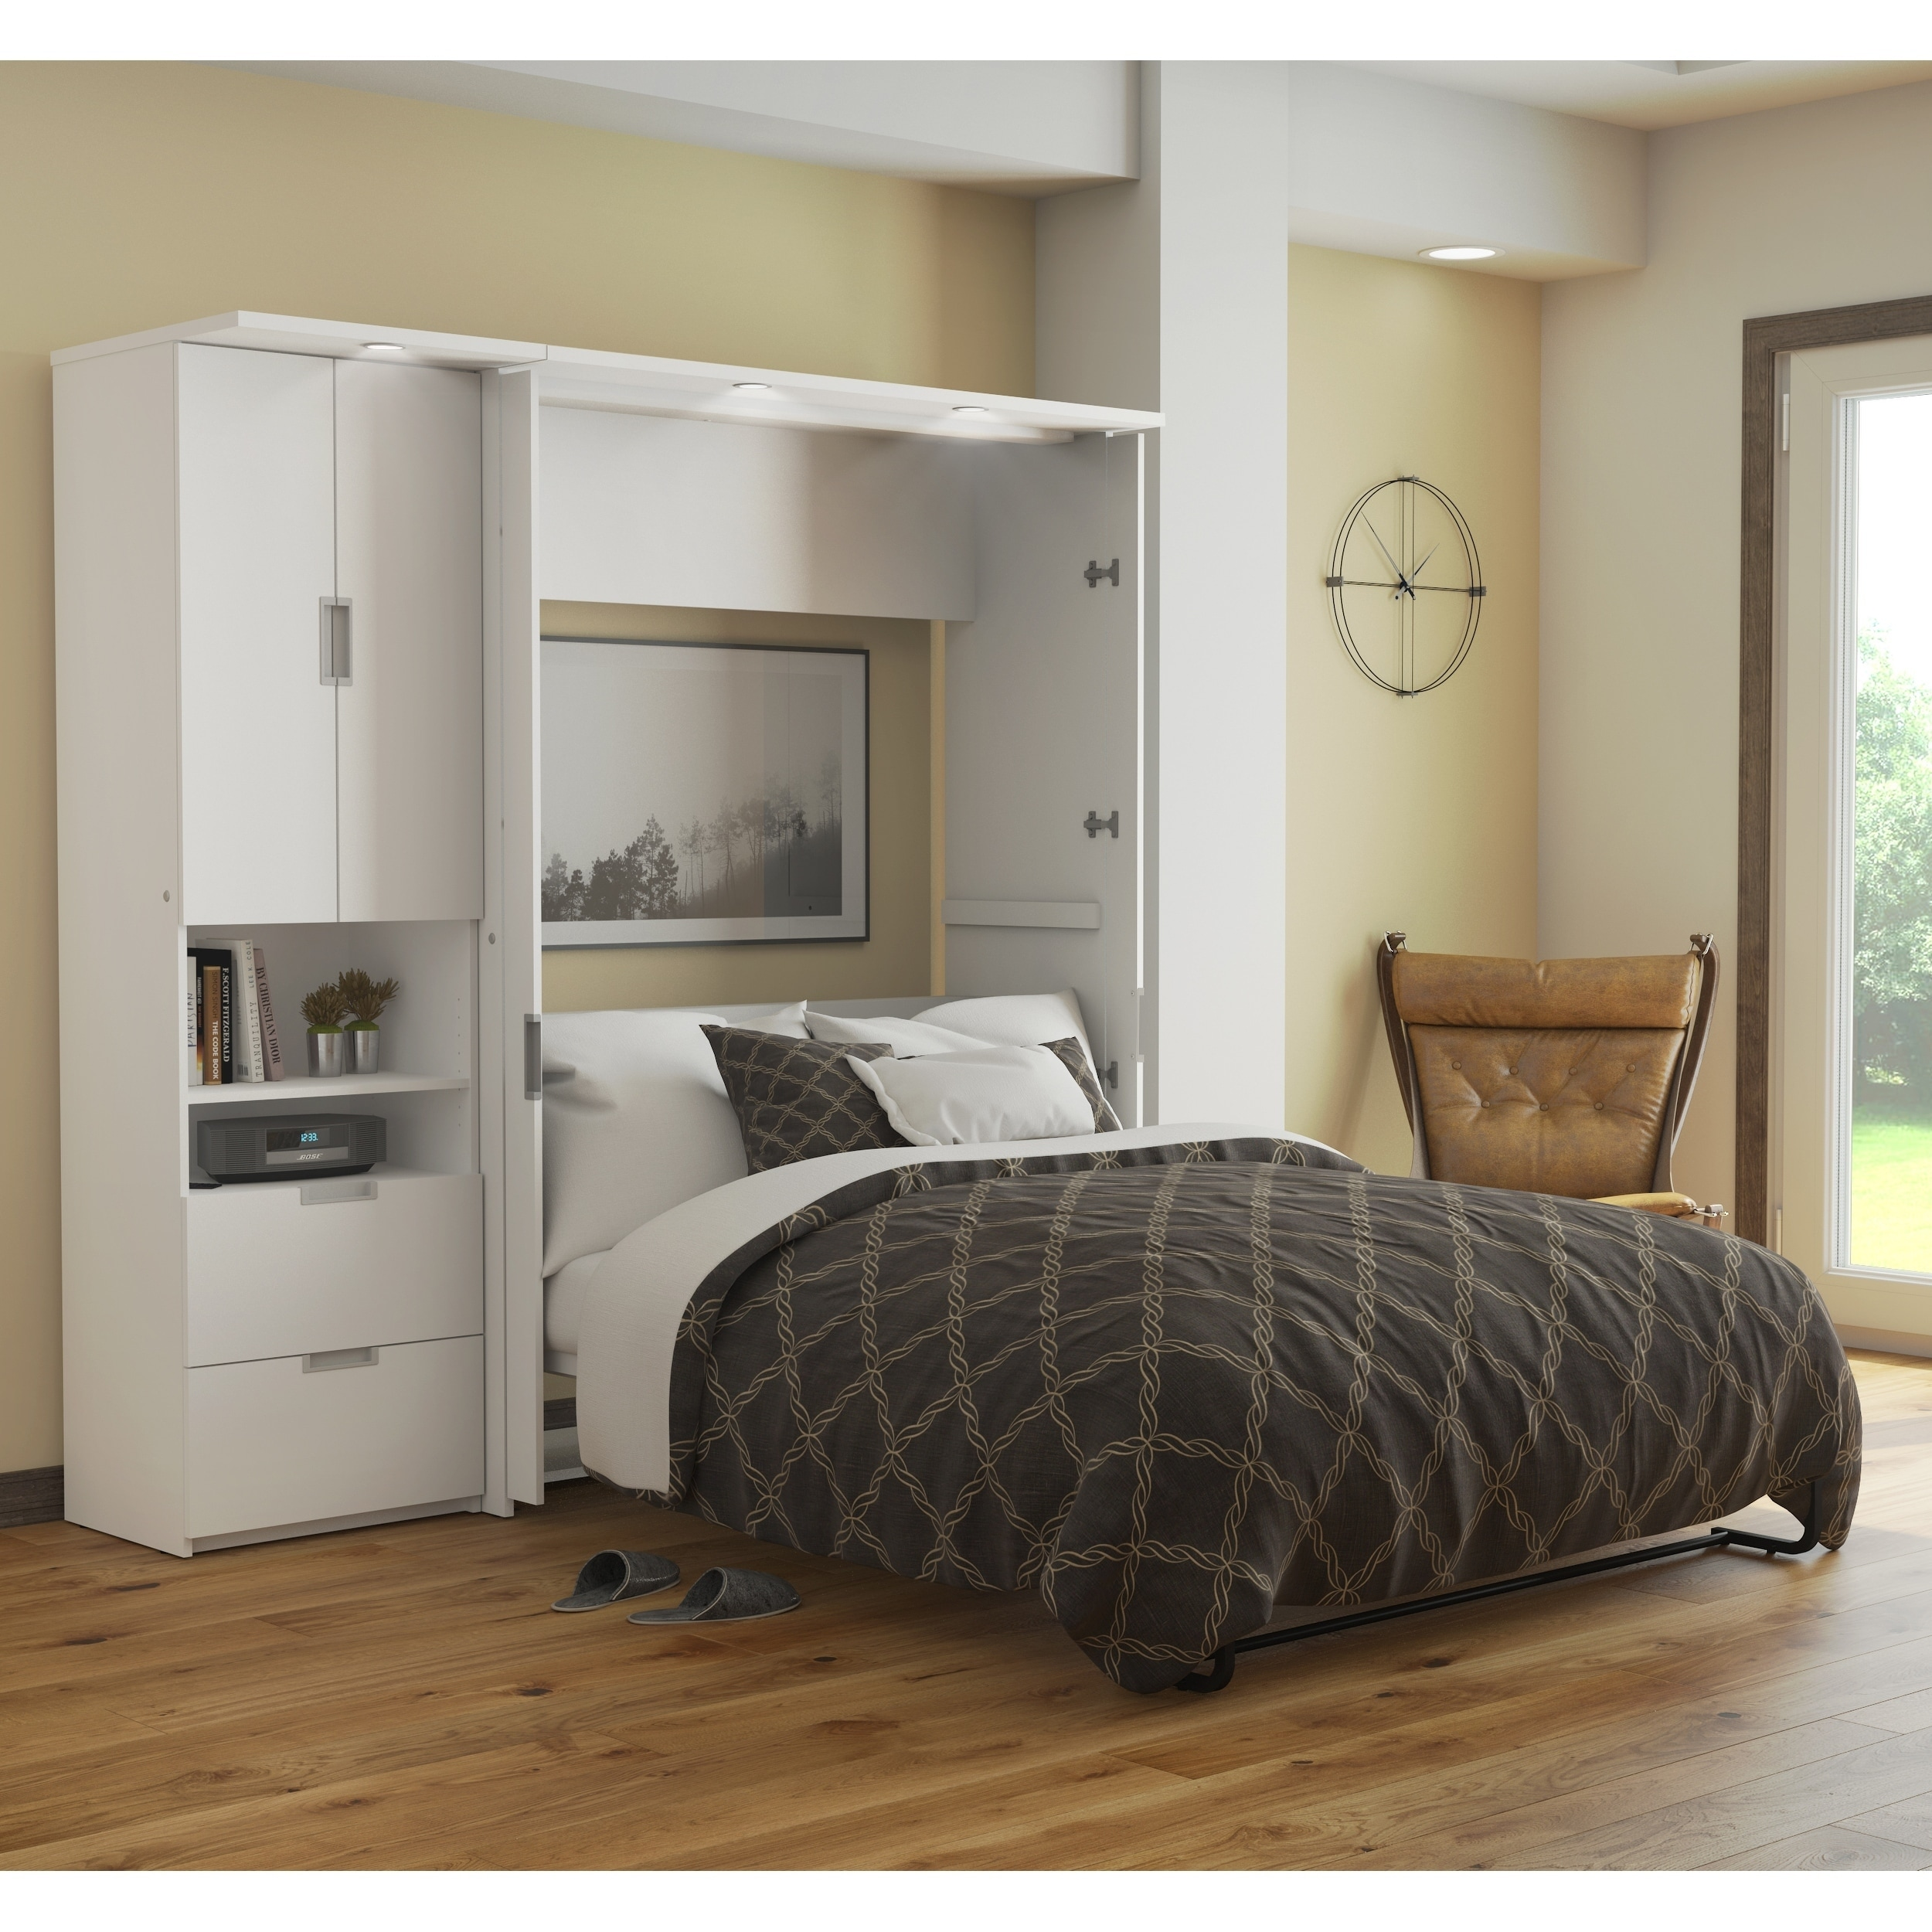 Bestar Lumina 2 Piece Full Wall Bed And Storage Unit In